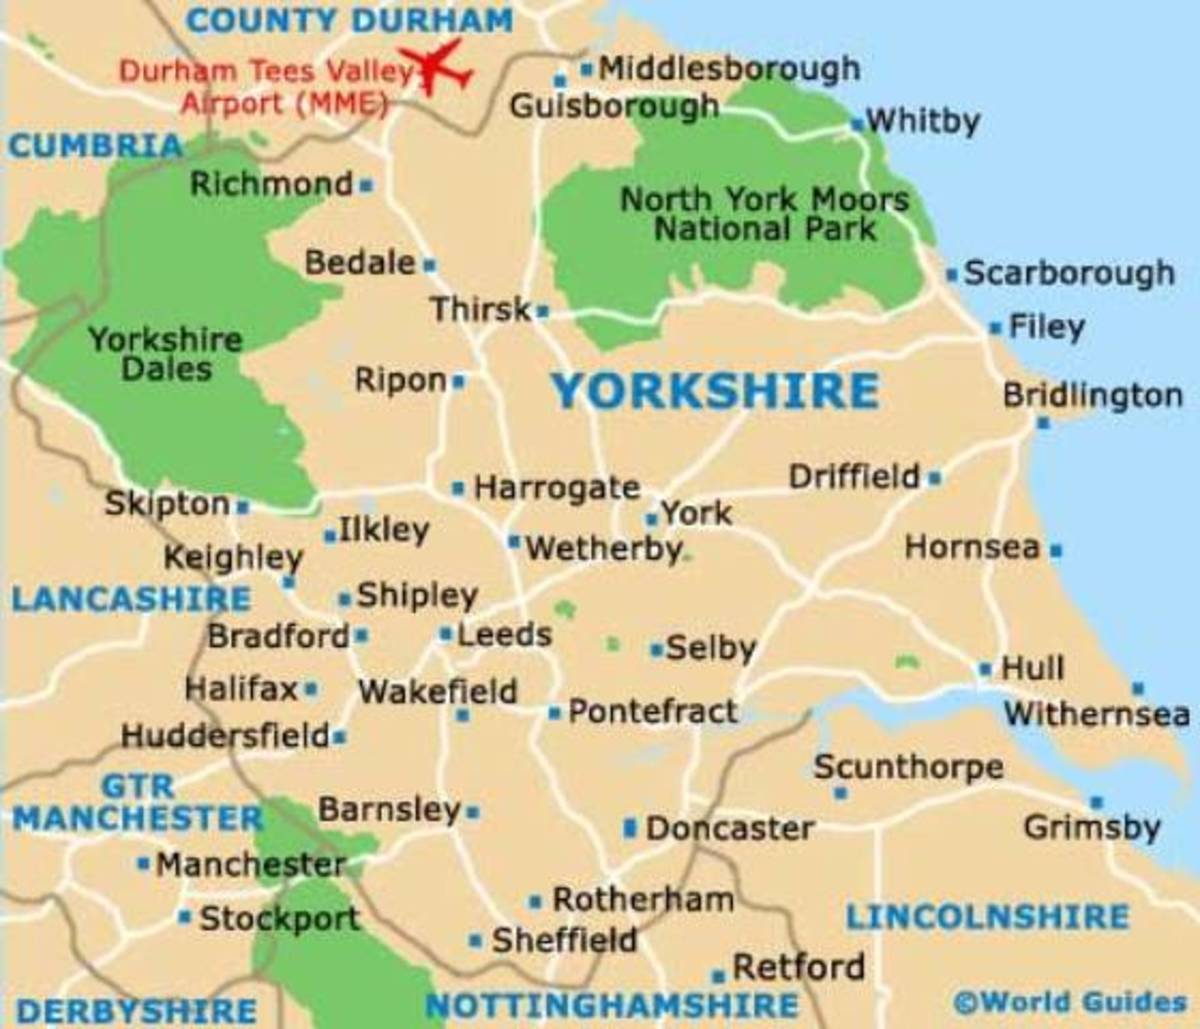 Yorkshire as it is. The Ridings went in 1974 in local government boundary reshuffles, to be redrawn after outcry and partly reconstituted. The East and West Ridings lost land to North Yorkshire - which lost land to County Durham